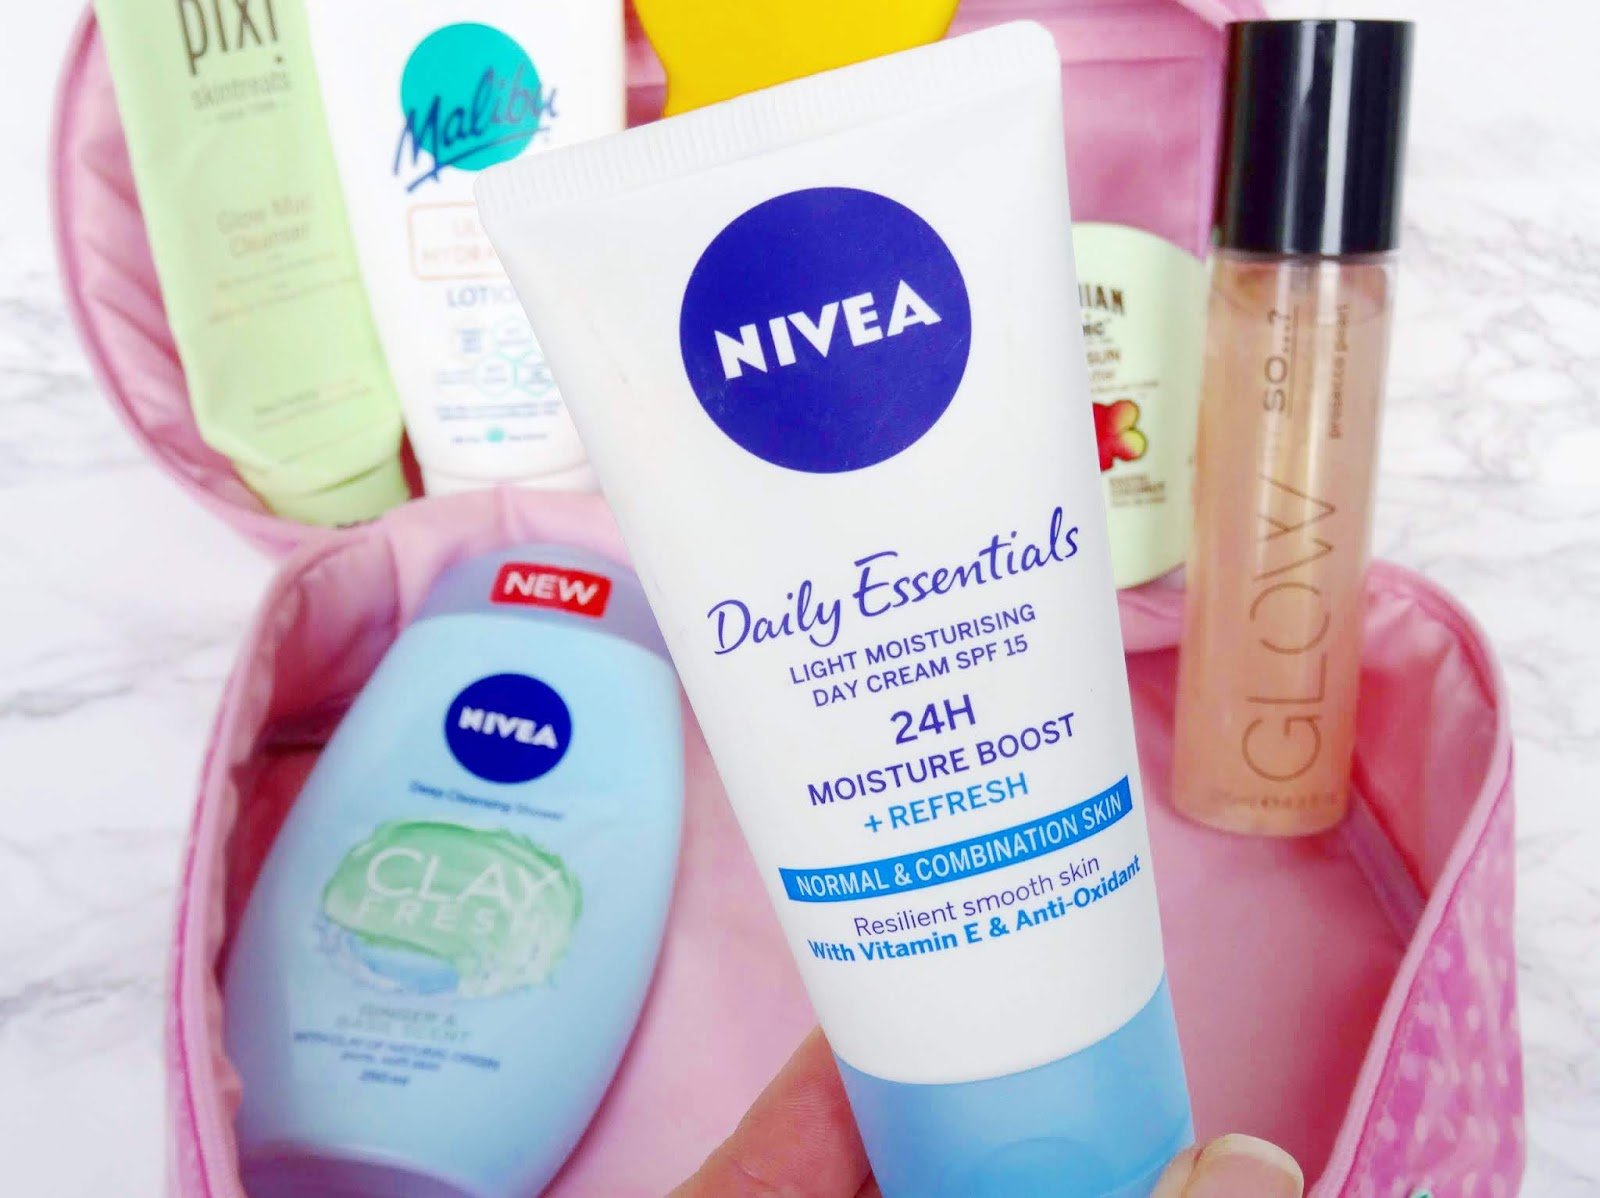 Nivea Daily Essentials Light Moisturising Day Cream